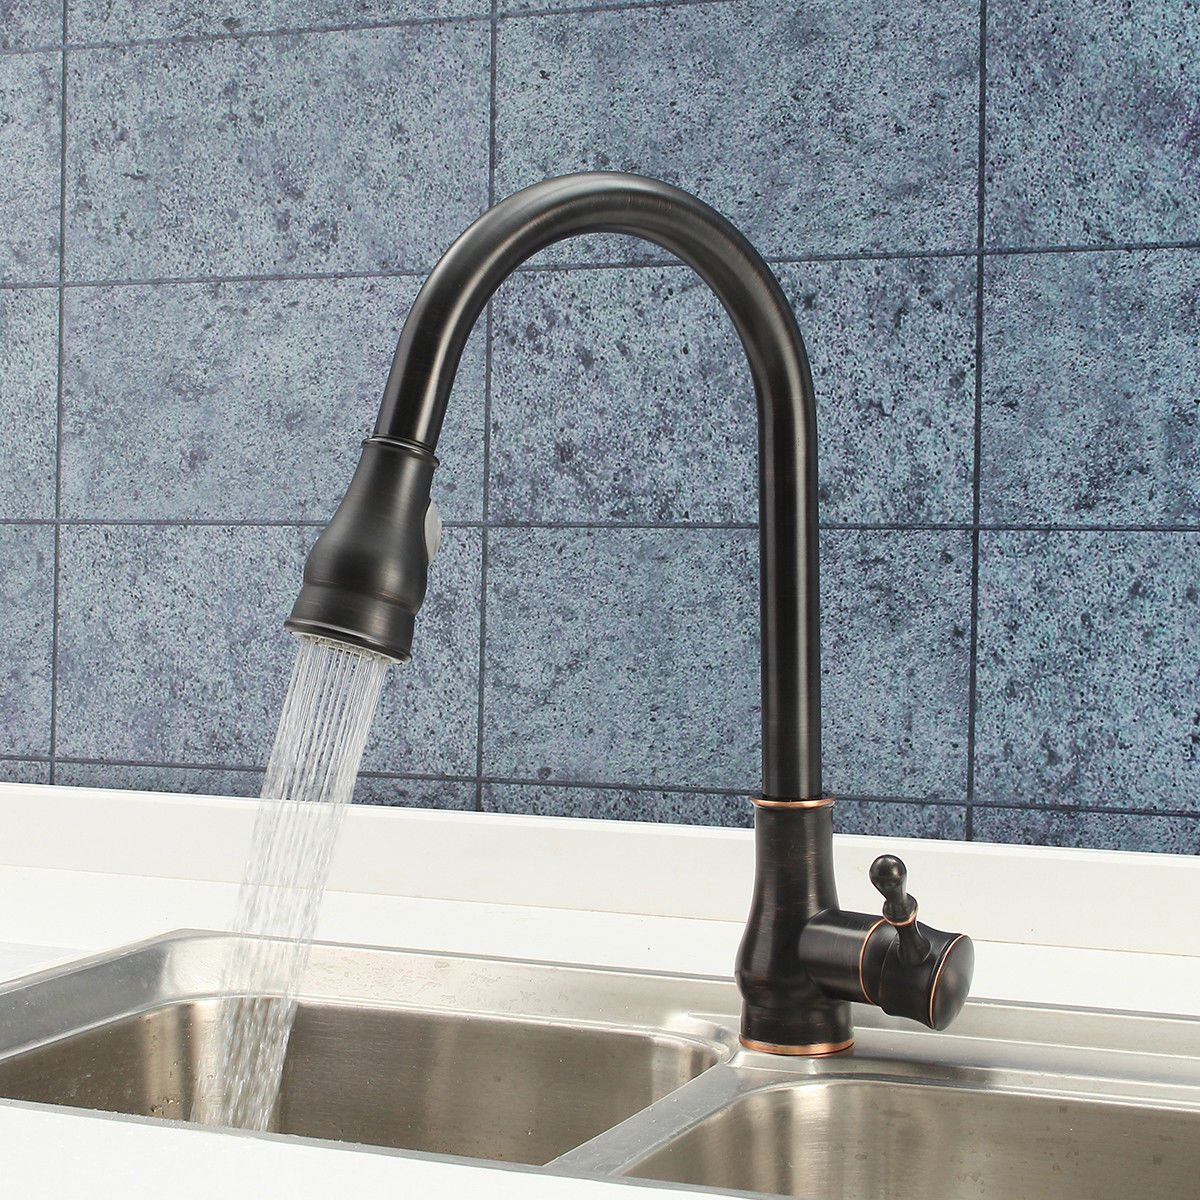 Modern Kitchen Oil Rubbed Bronze Faucet Pull Out Spray Brass Faucet ...